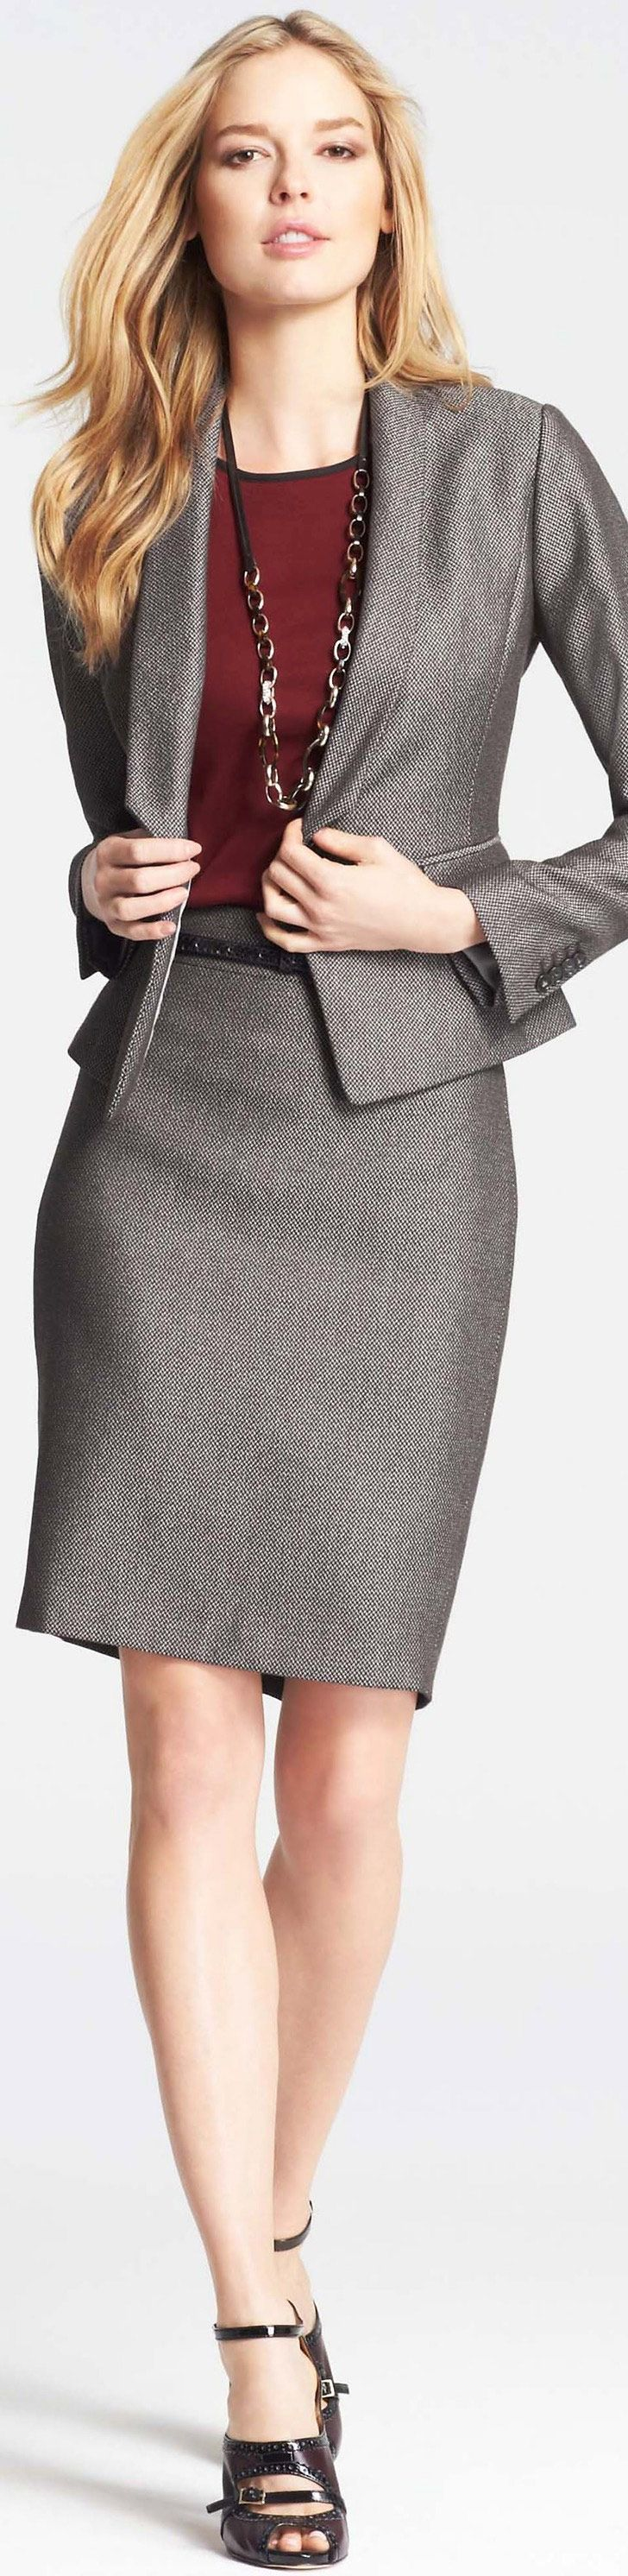 Ann Taylor skirt suit--love the suit but the shoes have to go! Why not a pump, closed or open toe? Maybe some hose?